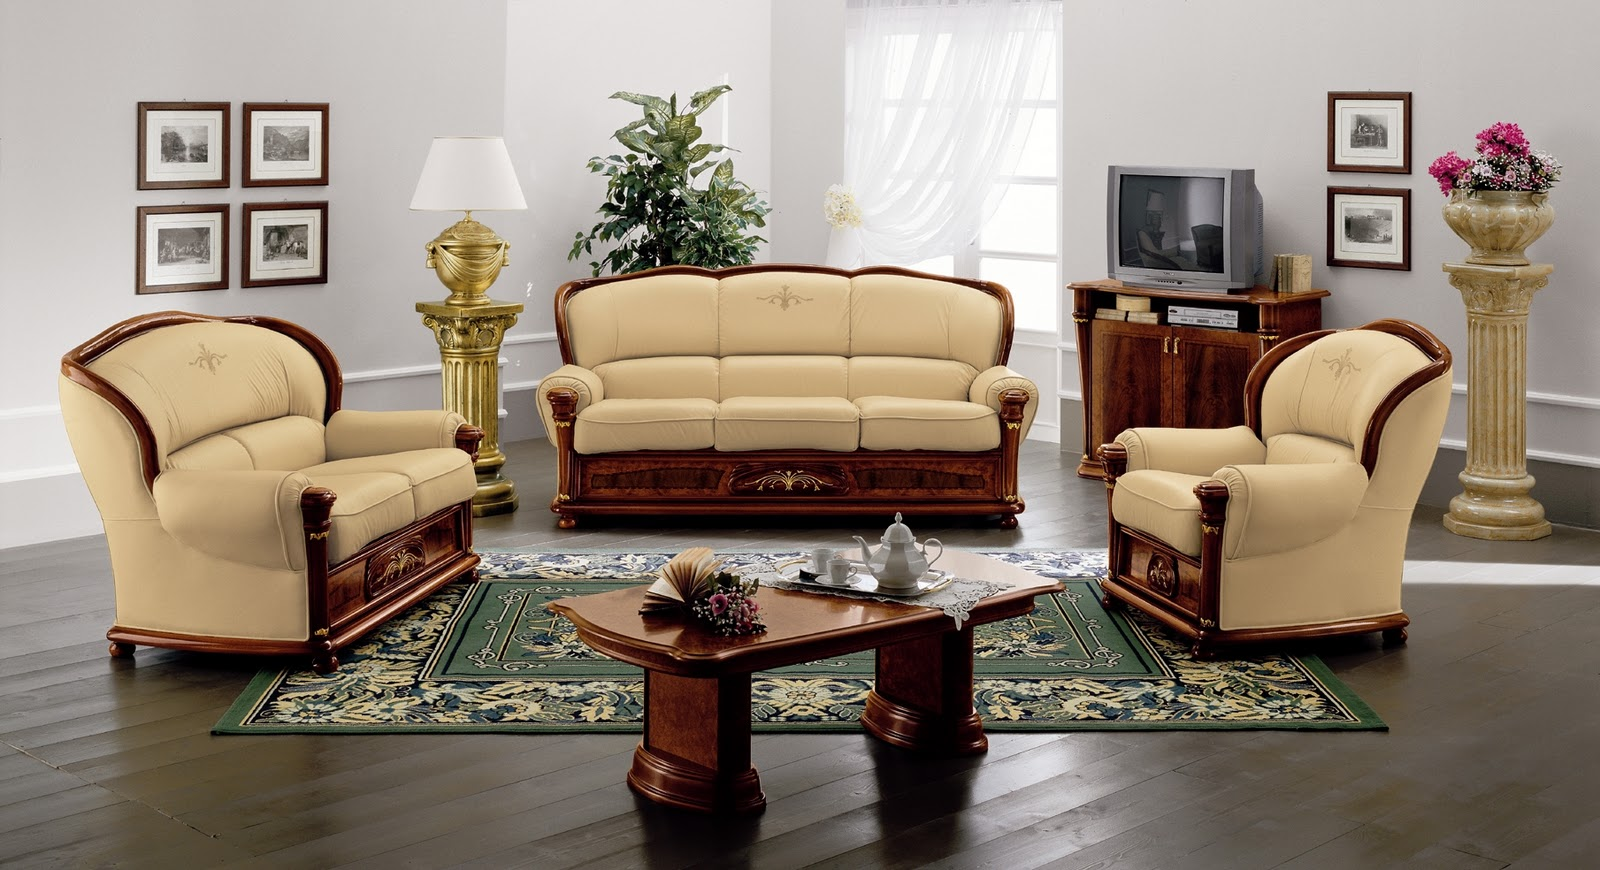 Sofa Sets For Hall What Colour Walls Go With Brown Leather Living Room Design Photos Interior Designs